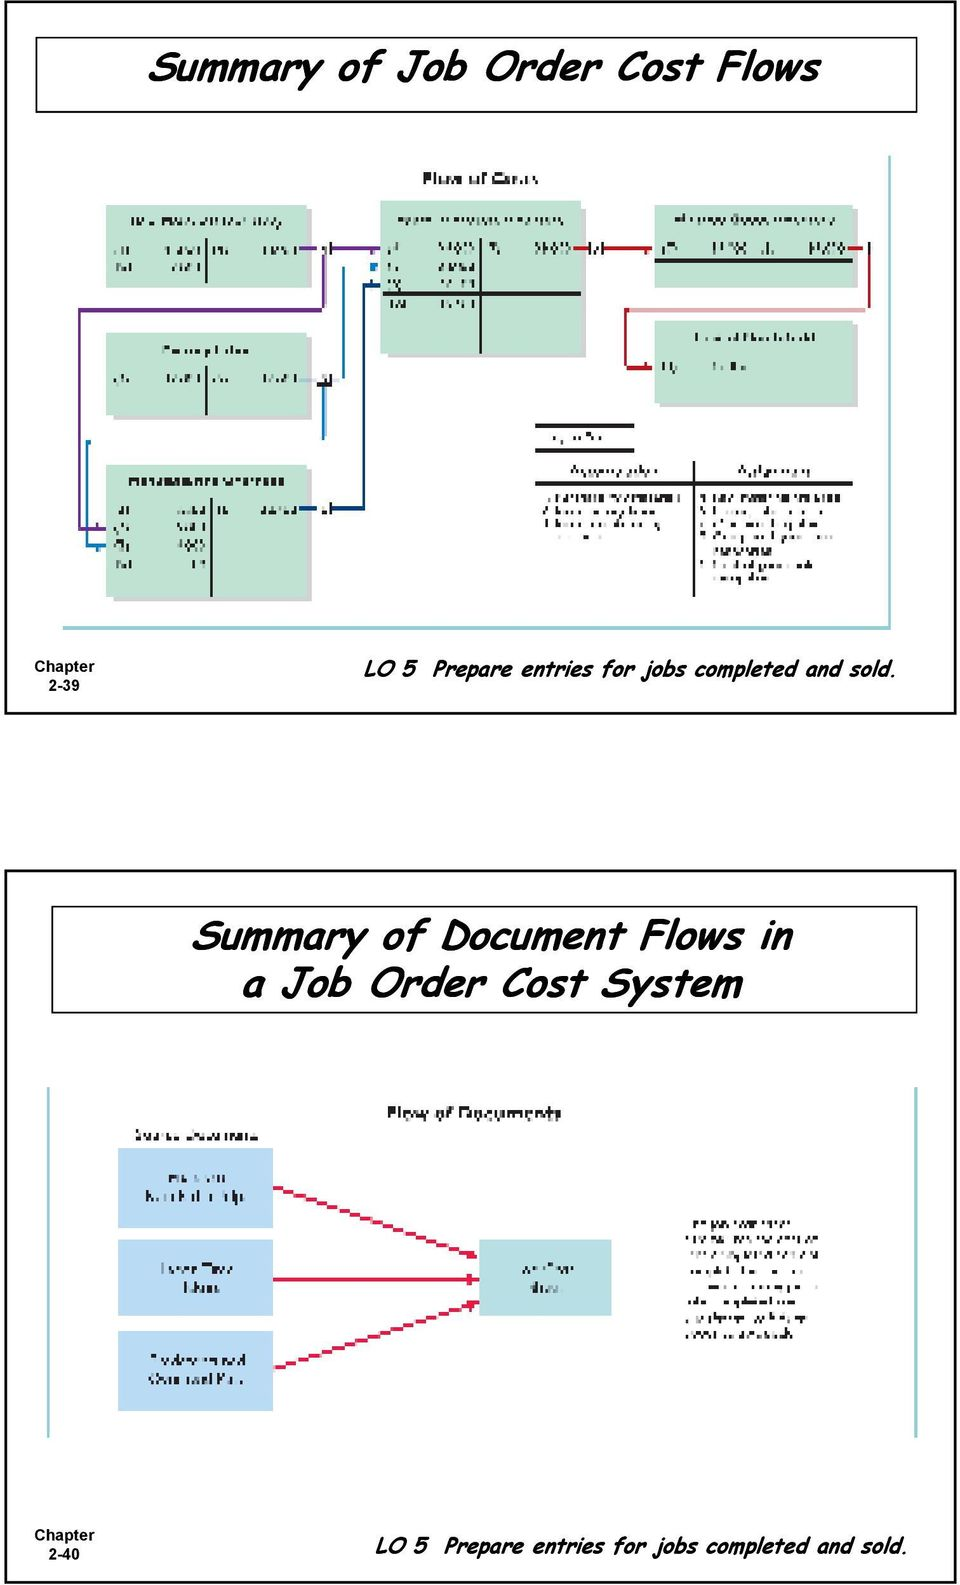 Summary of Document Flows in a Job Order Cost